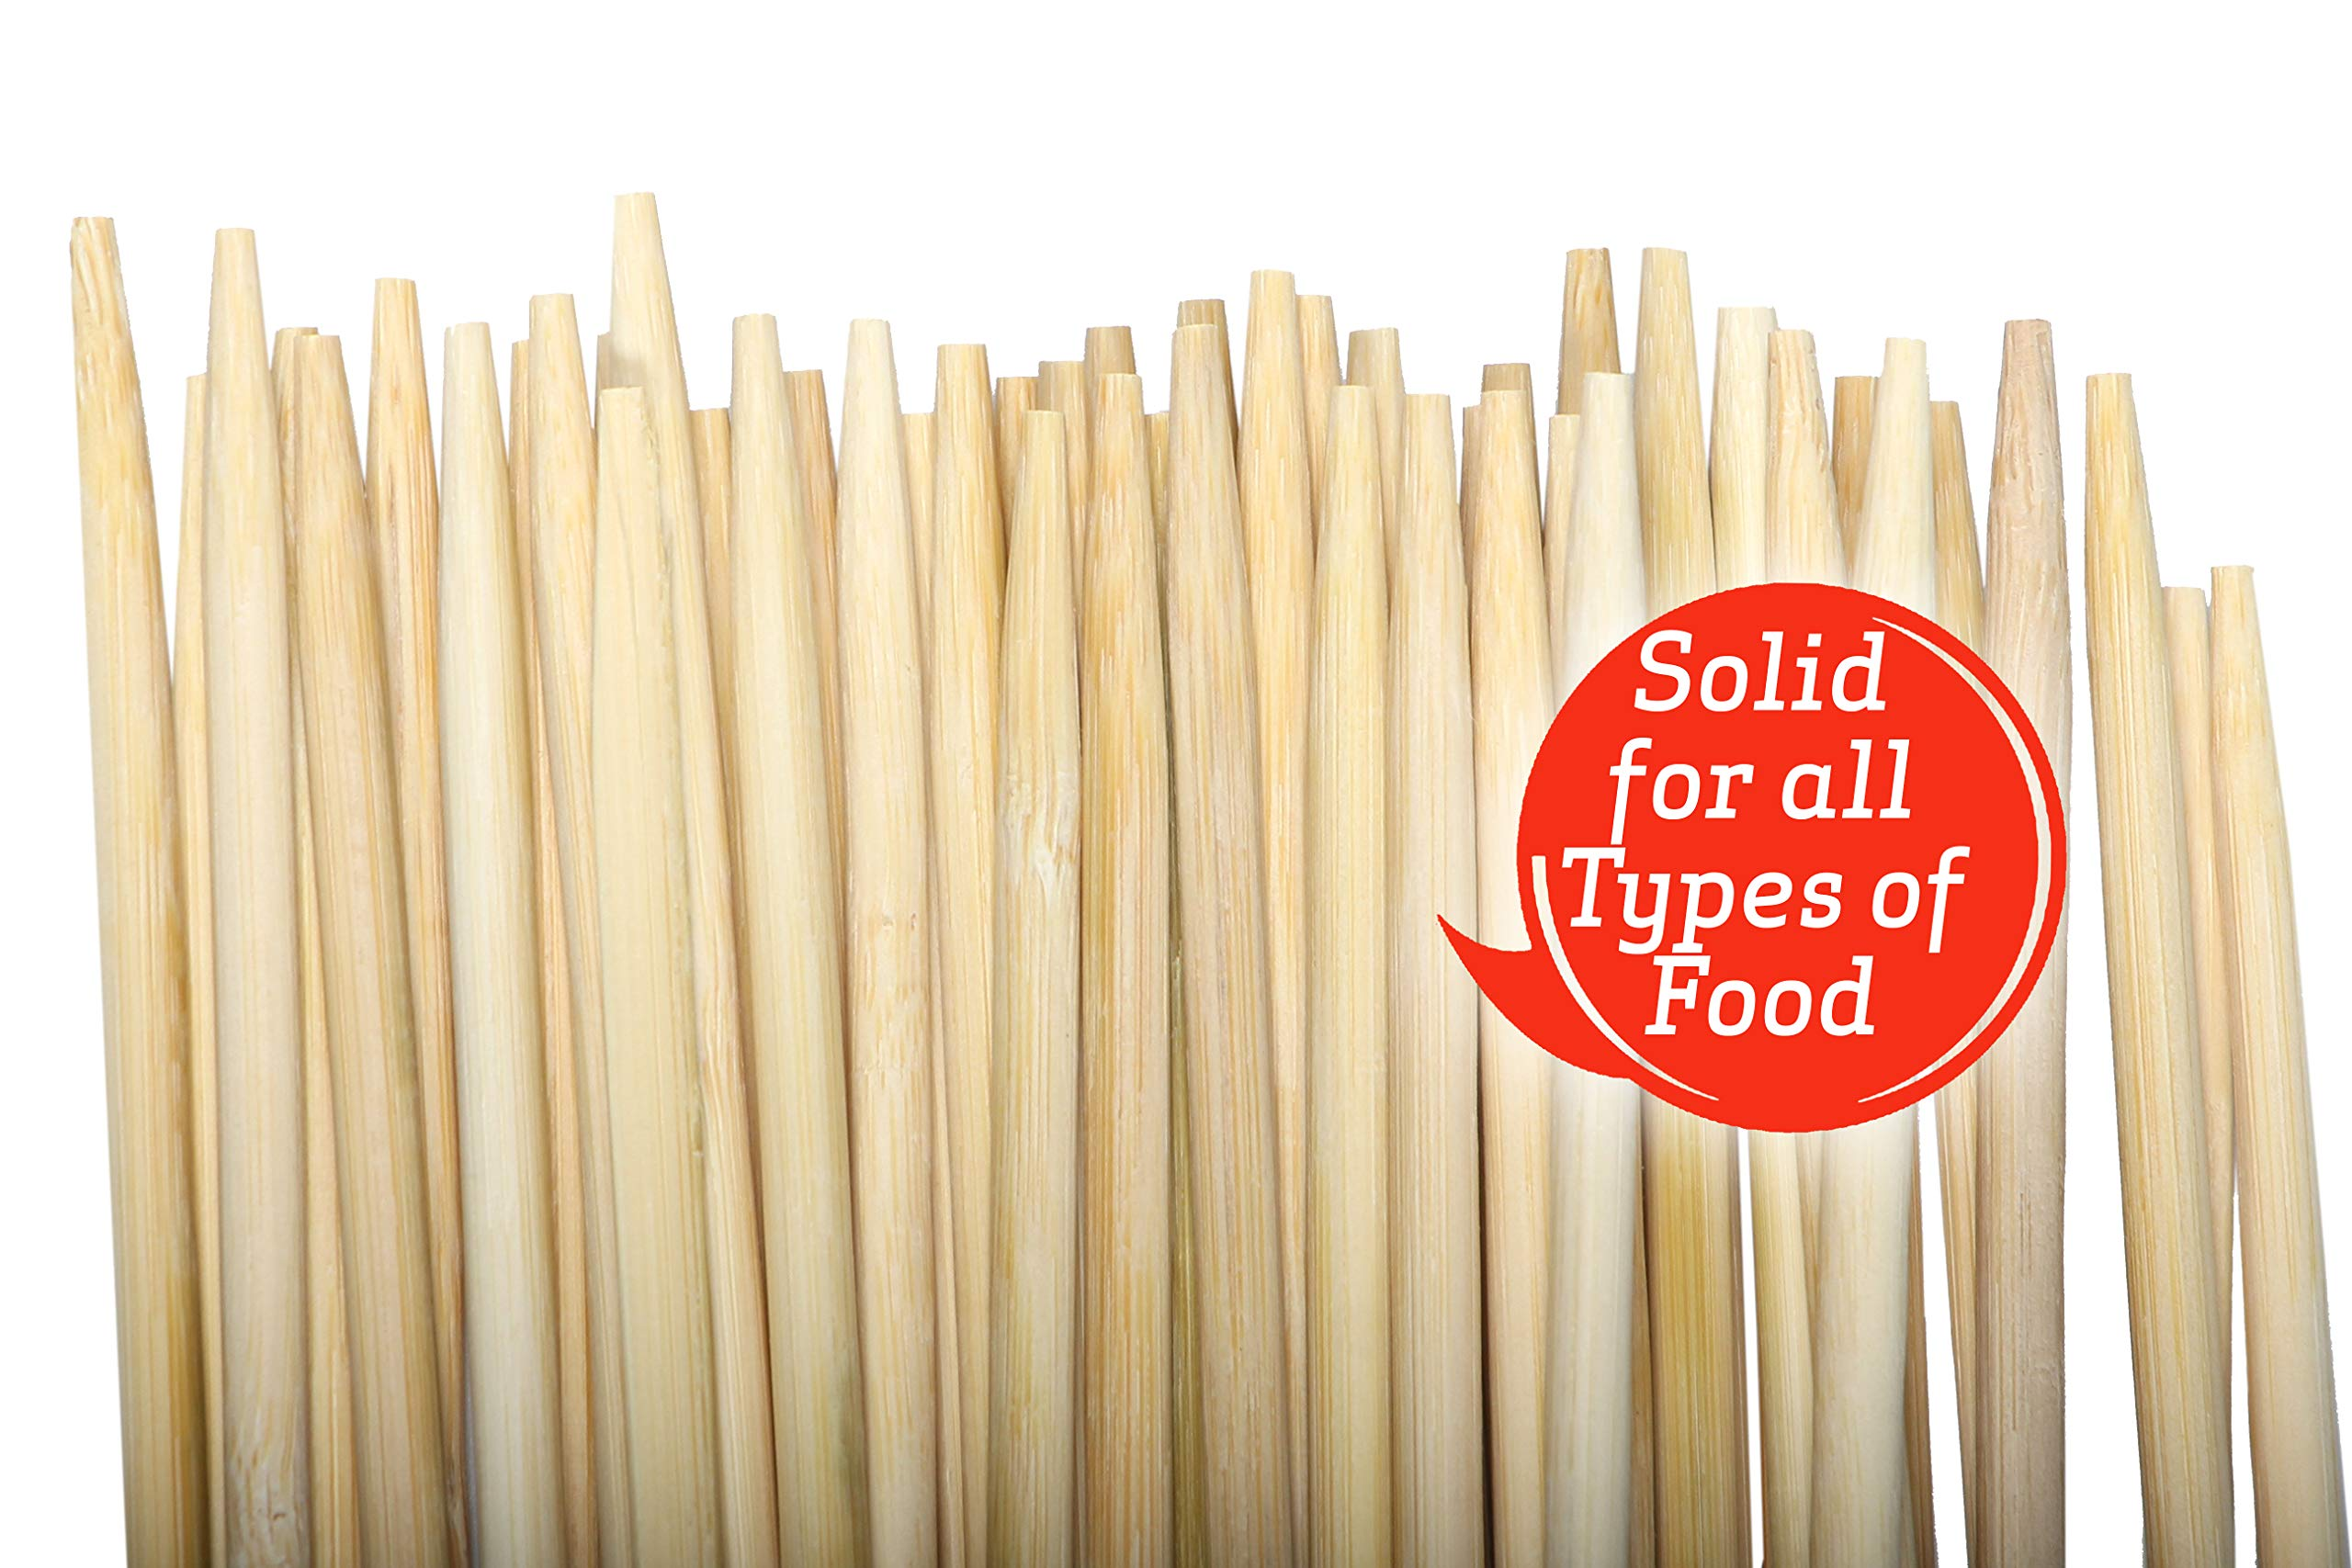 50 PCS | Marshmallow Bamboo ROASTING STICKS | 36''Long 5''mm Thick Extra Long Heavy Duty | Semi-Dulled Point SAFE FOR KIDS | 100% BIODEGRADABLE, NO CLEANING, NO SOAKING by FirePit Stix